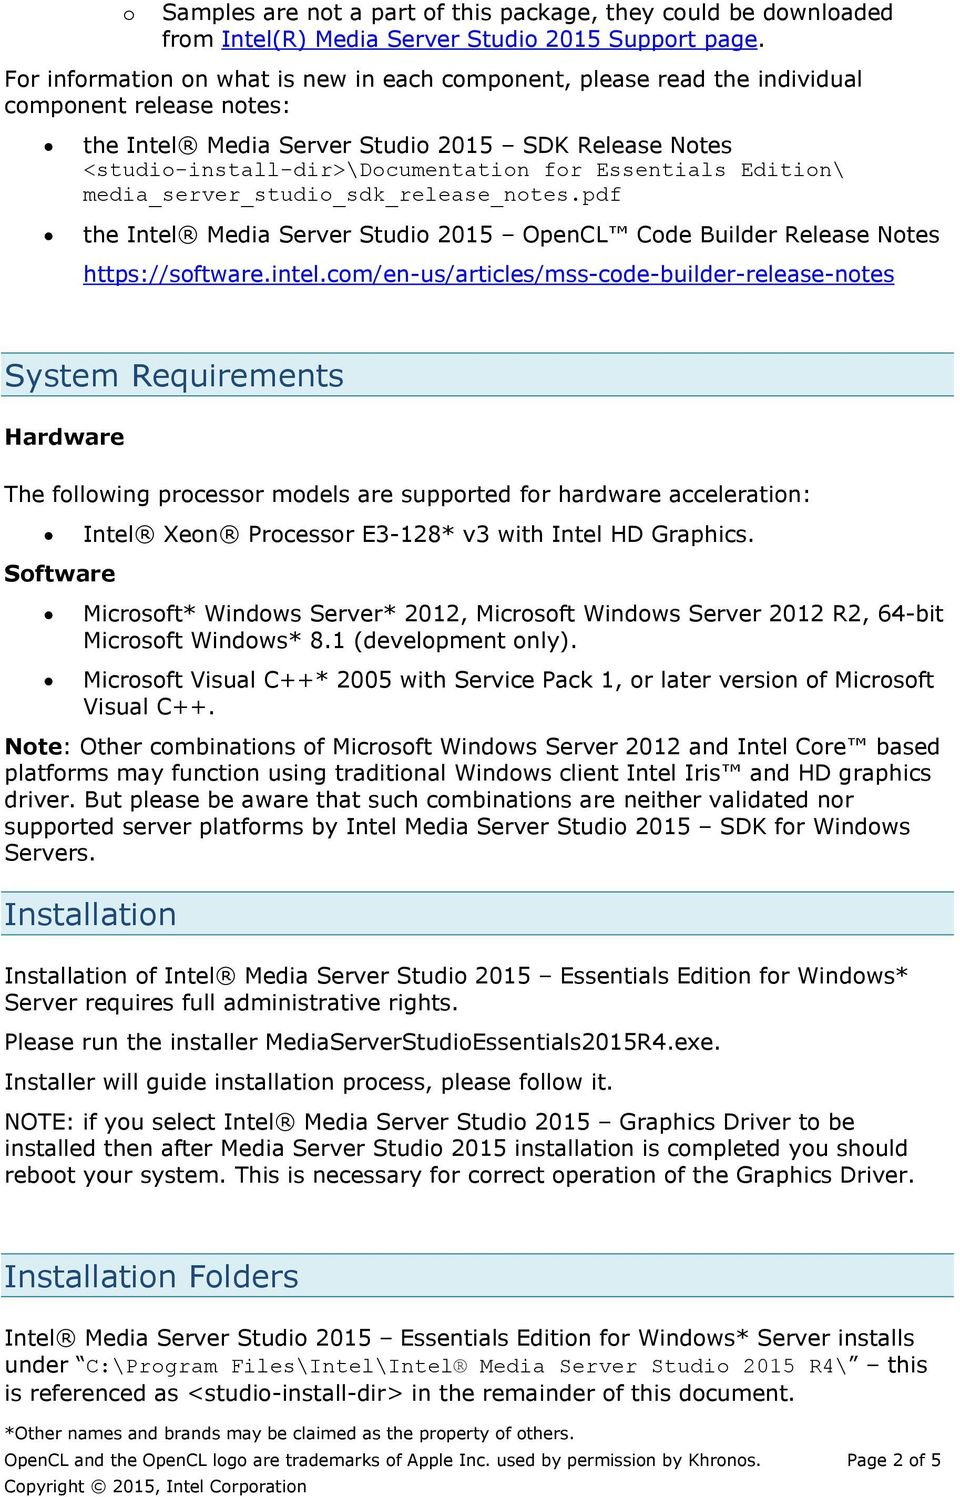 Essentials Edition\ media_server_studio_sdk_release_notes.pdf the Intel Media Server Studio 2015 OpenCL Code Builder Release Notes https://software.intel.